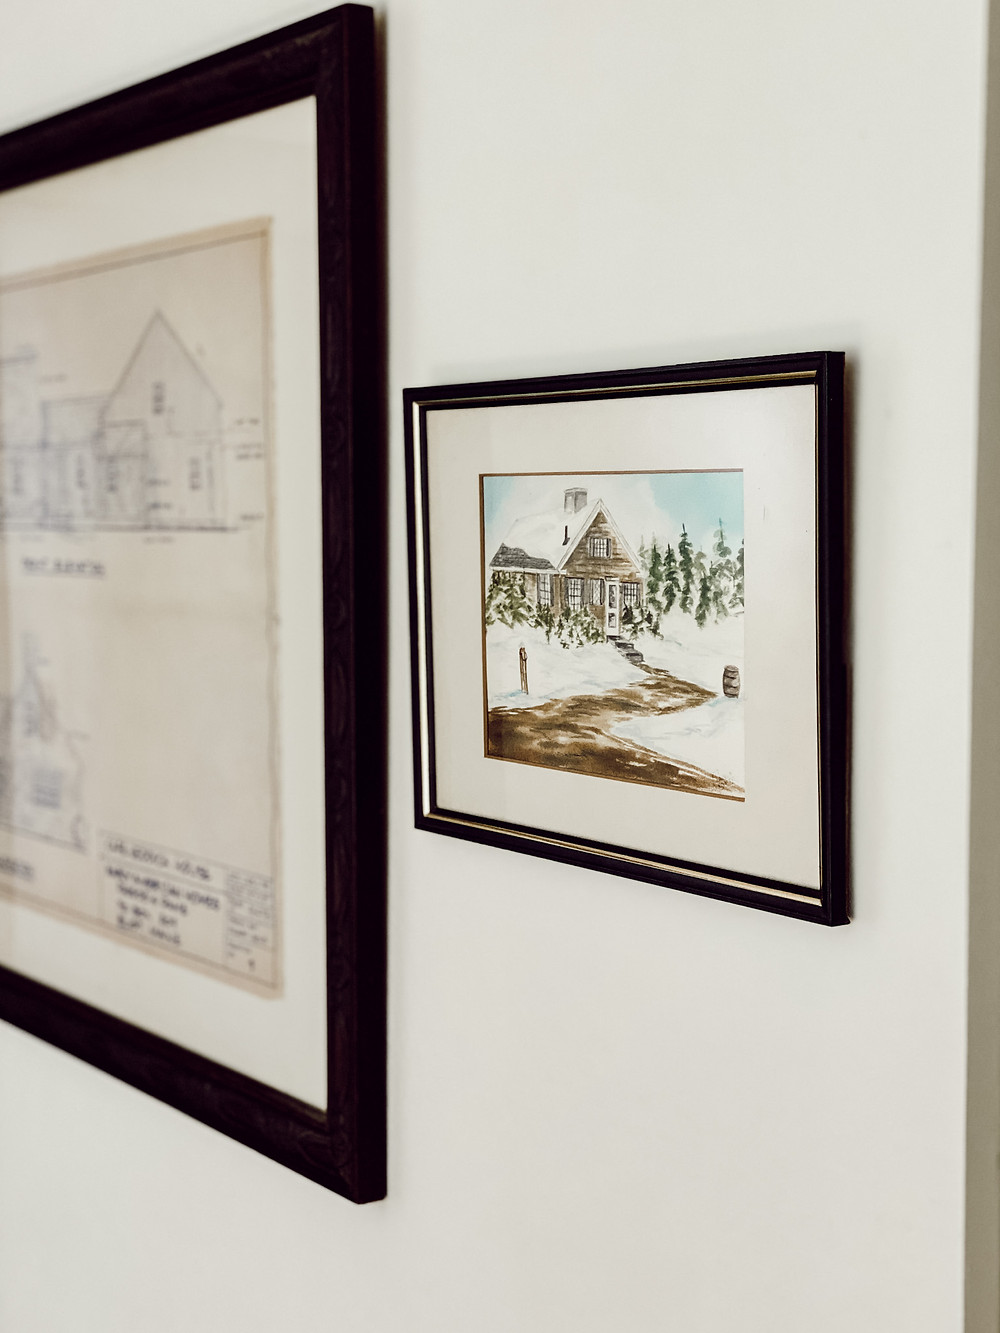 Showcasing Aged Architectural House Drawings